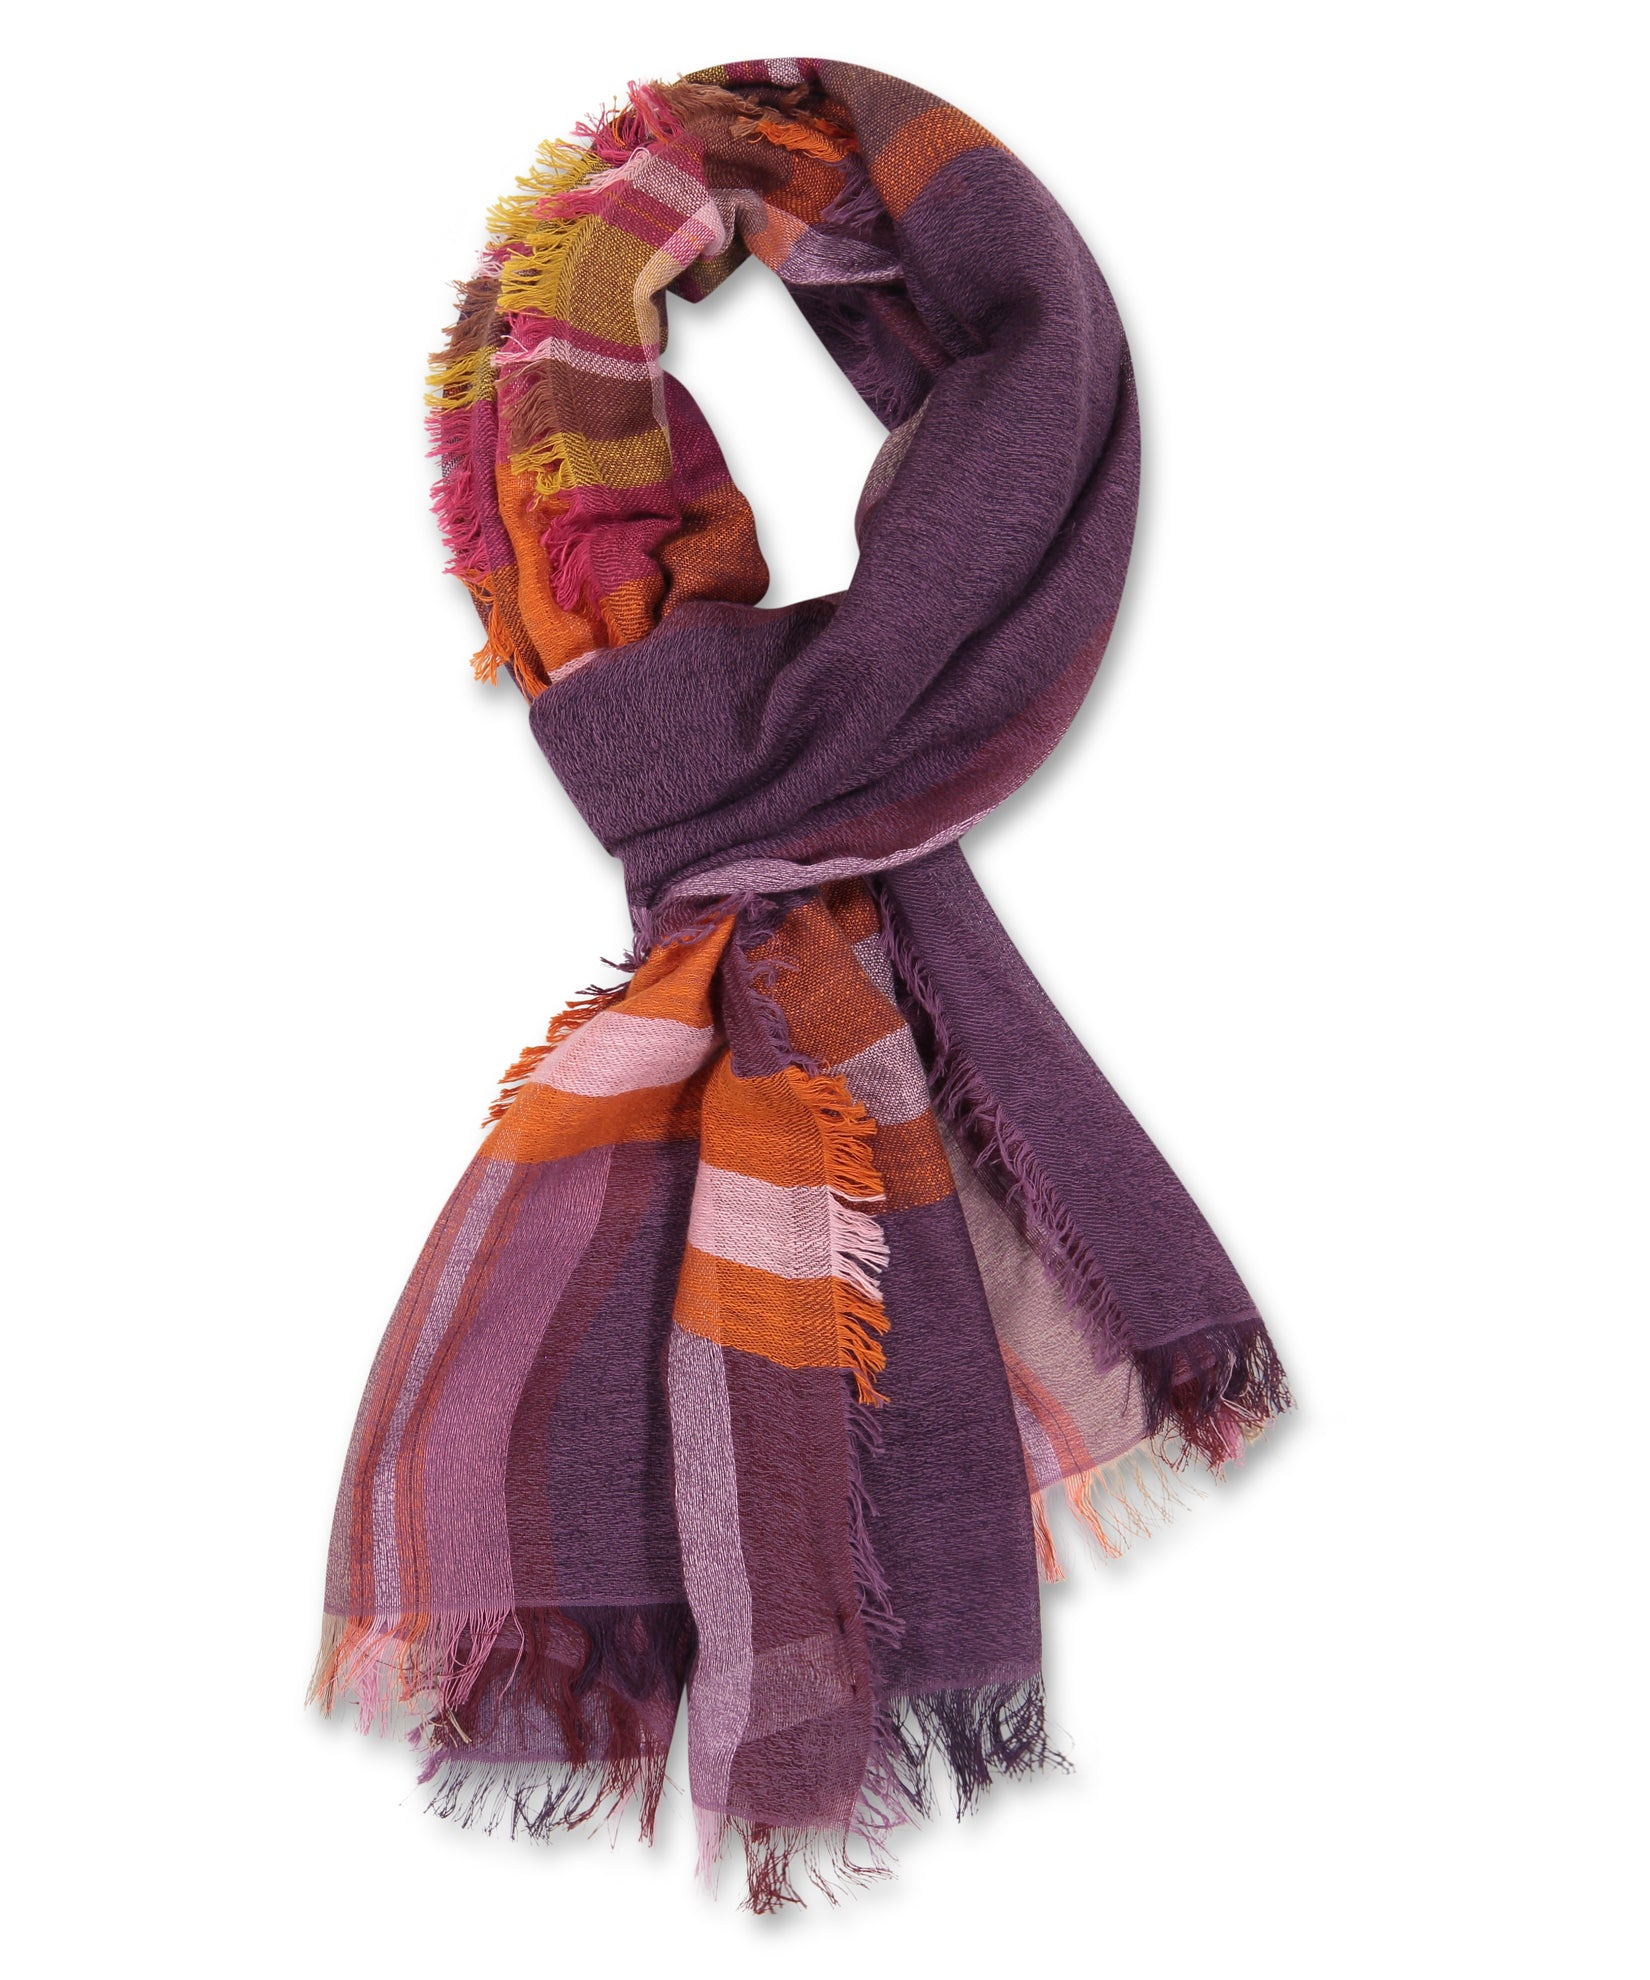 Smoked Lilac - Opposing Plaids Wrap